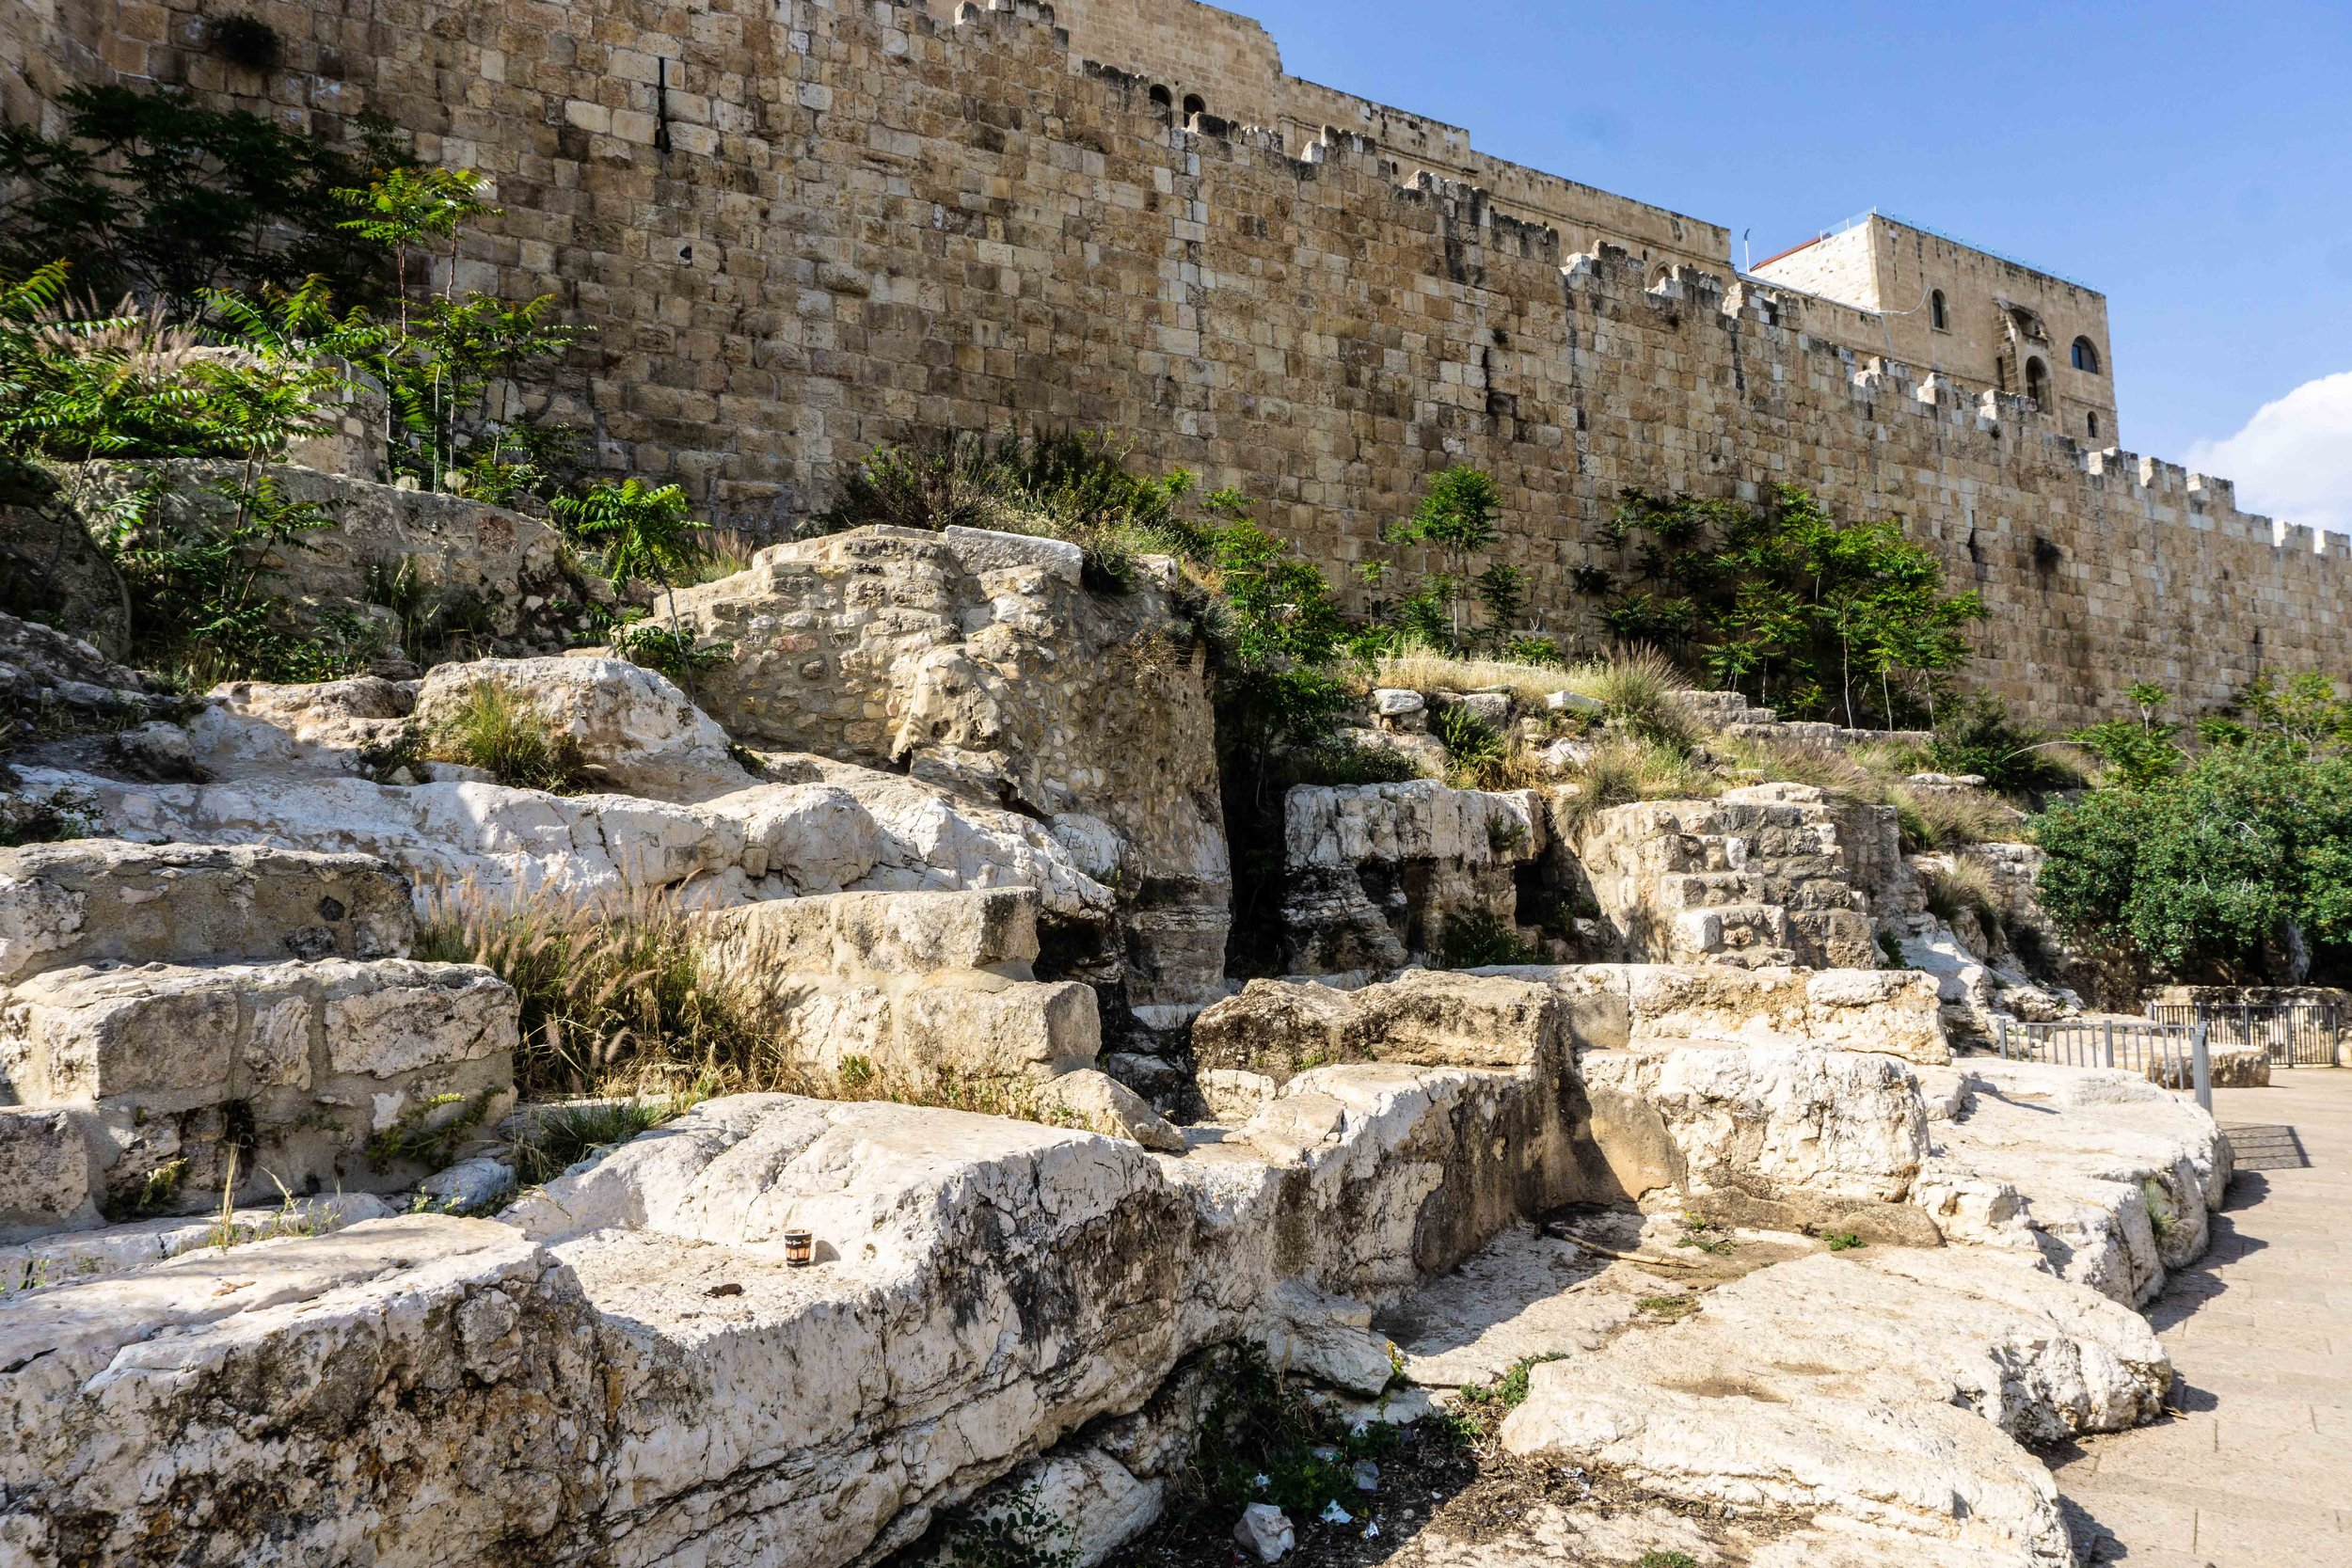 Hovels outside the Jerusalem city walls (where the lepers were cast)